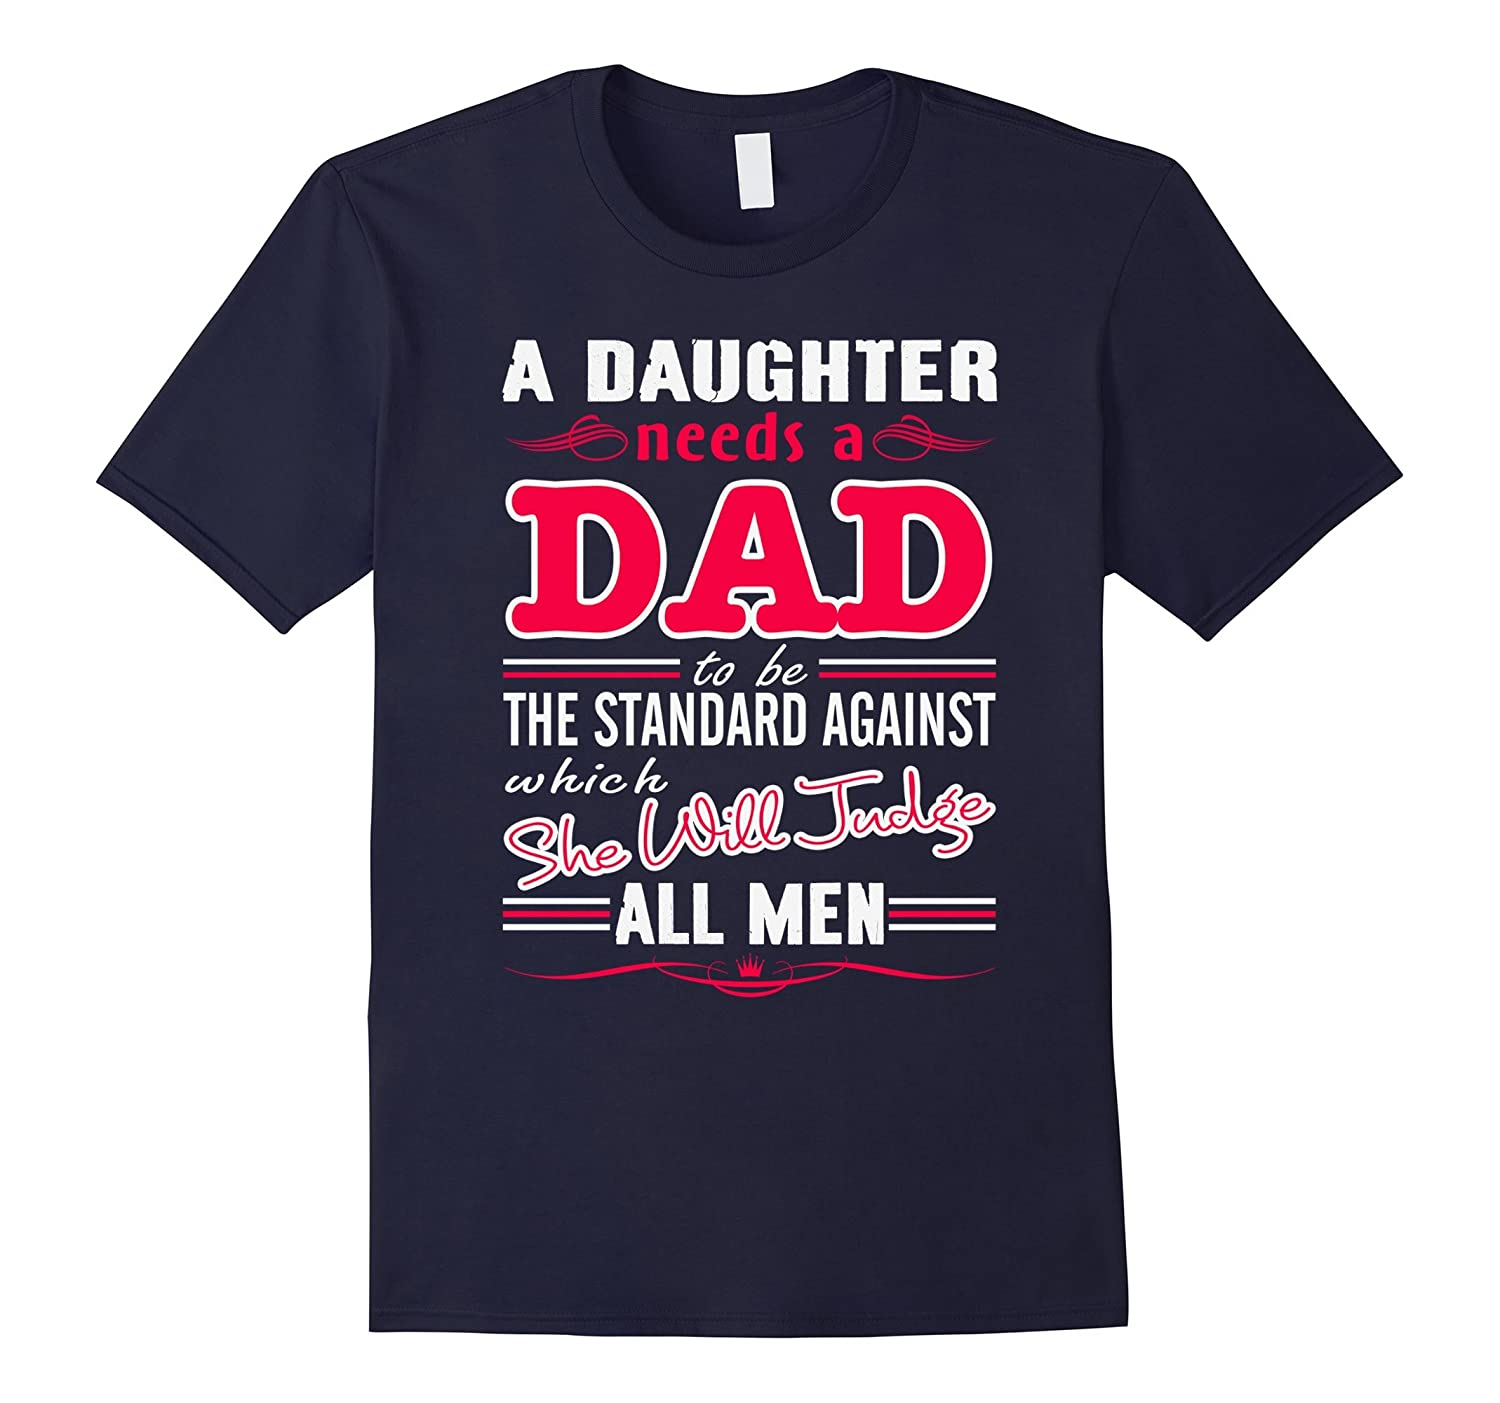 Fathers Day Gifts Frome Daughter Funny T-shirts est2017-Vaci